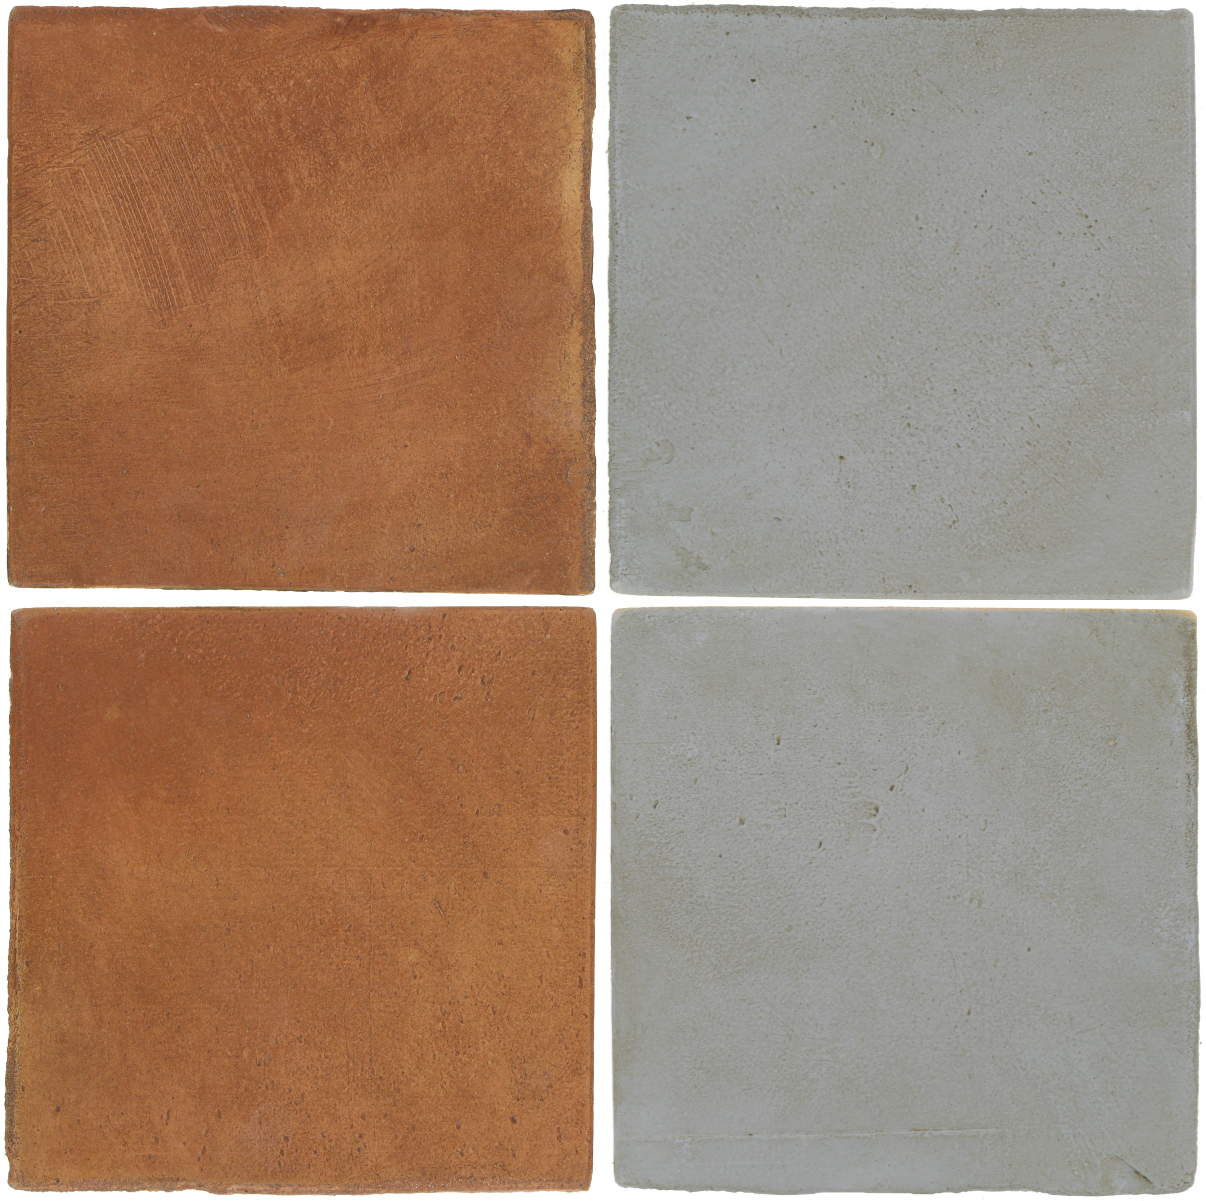 Pedralbes Antique Terracotta  2 Color Combinations  OHS-PSTR Traditional + OHS-PGOG Oyster Grey